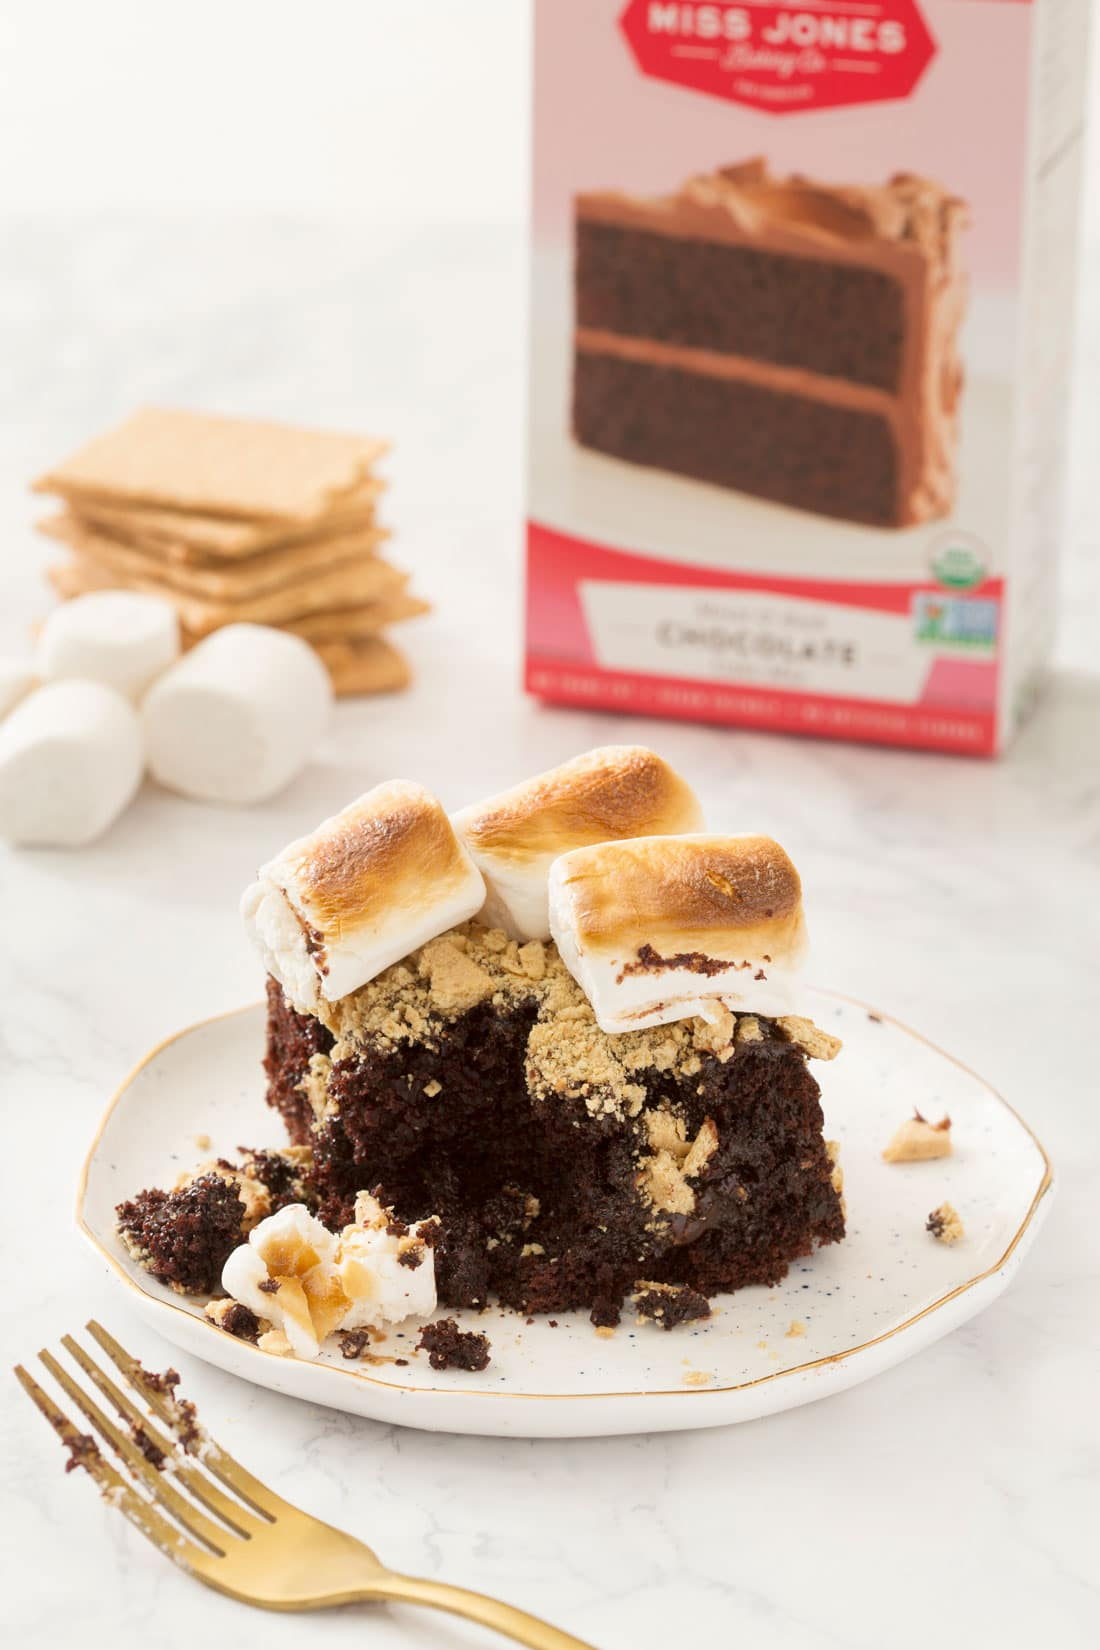 Miss Jones Chocolate S'mores Poke Cake on a plate in front of a box of Miss Jones Organic Chocolate Cake mix